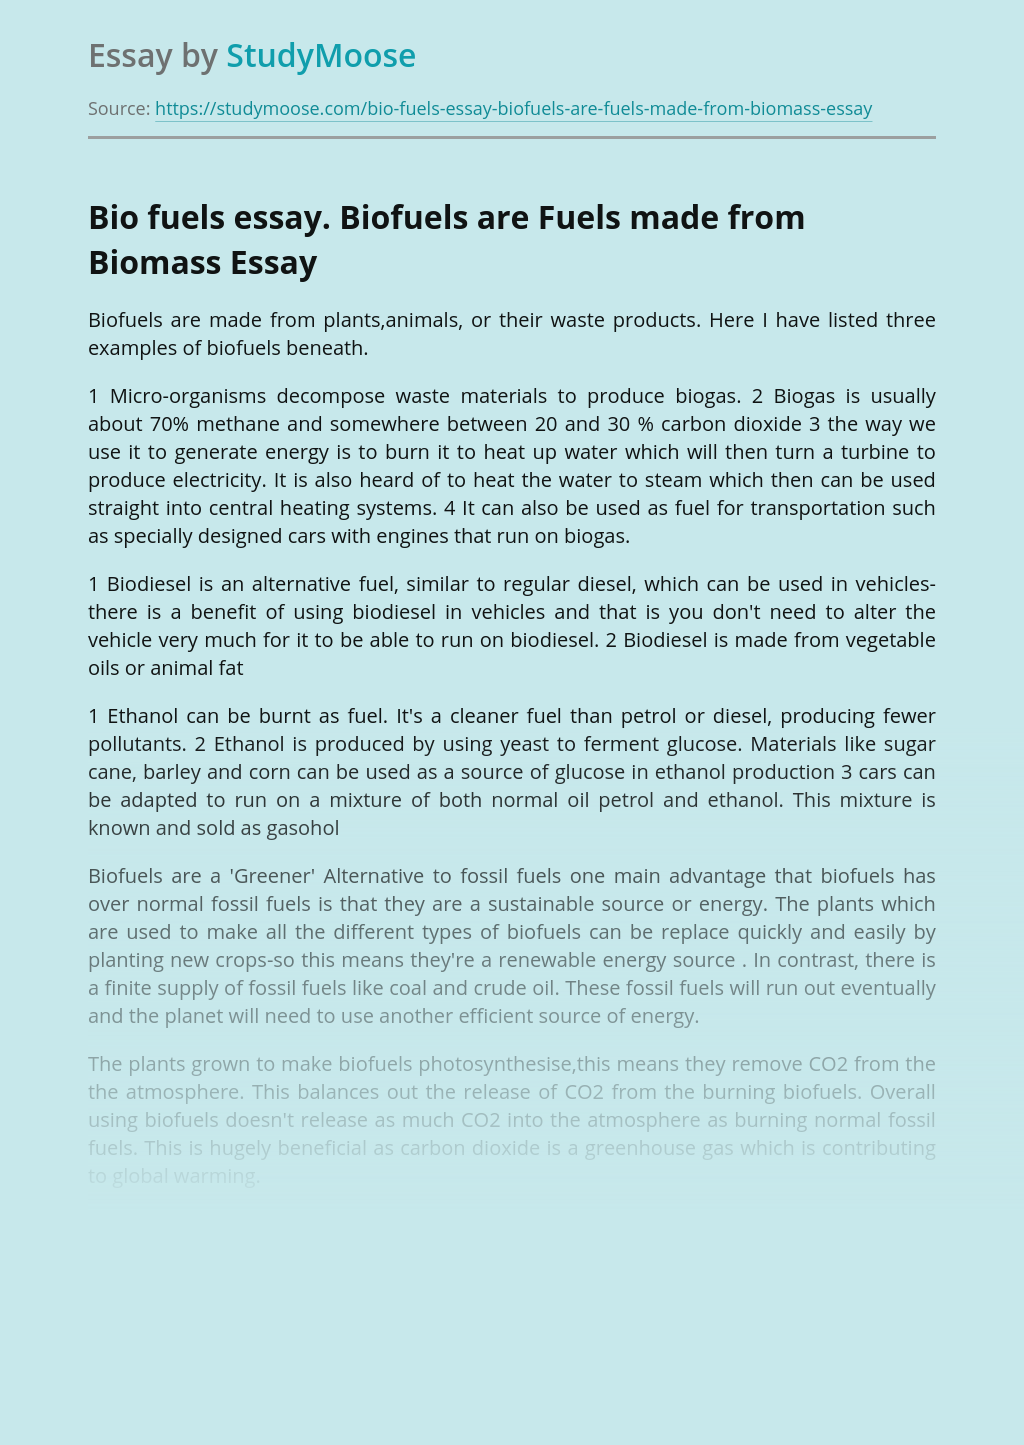 Bio fuels essay. Biofuels are Fuels made from Biomass